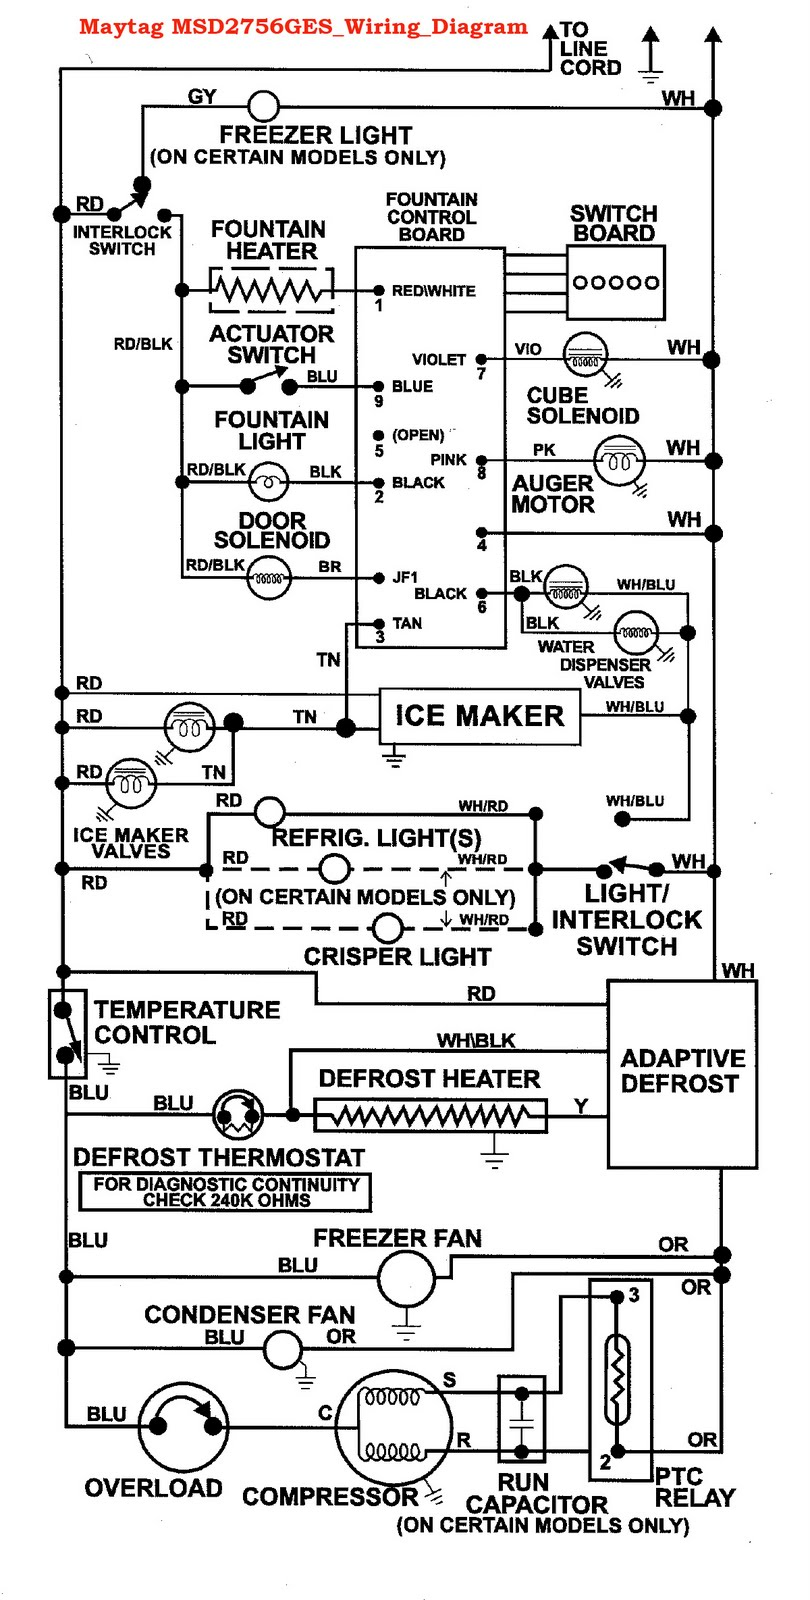 maytag refrigerator wiring diagram simple wiring diagram rh 26 mara cujas de dryer wiring maytag dryer [ 810 x 1600 Pixel ]